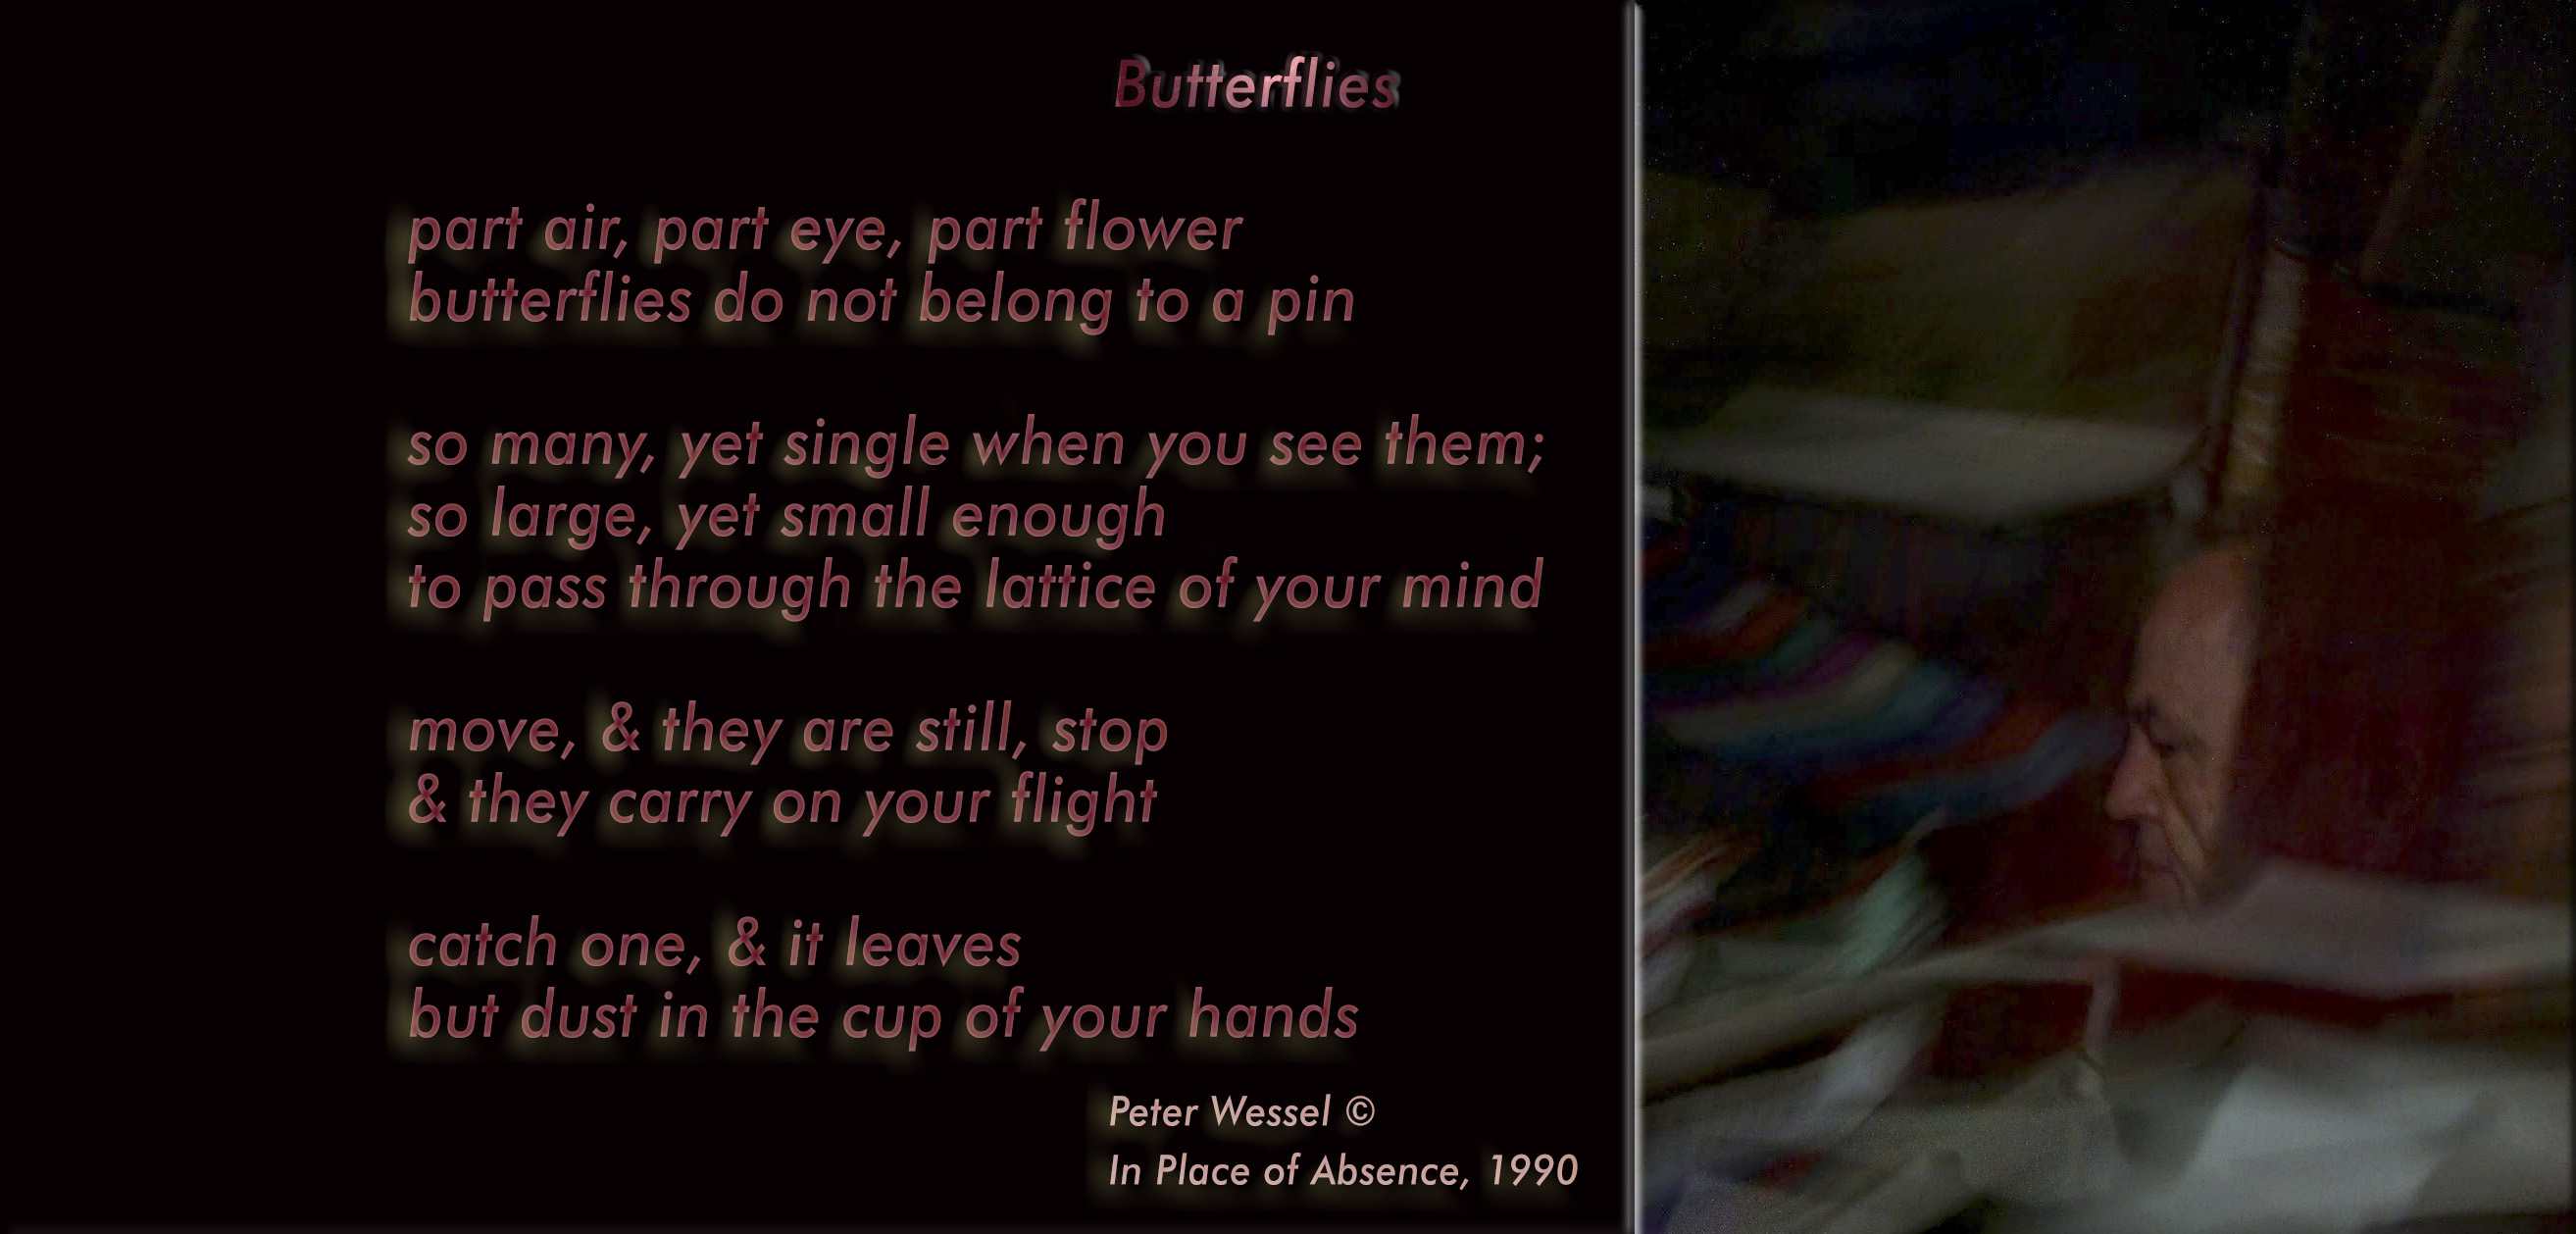 butterflies-wide-version